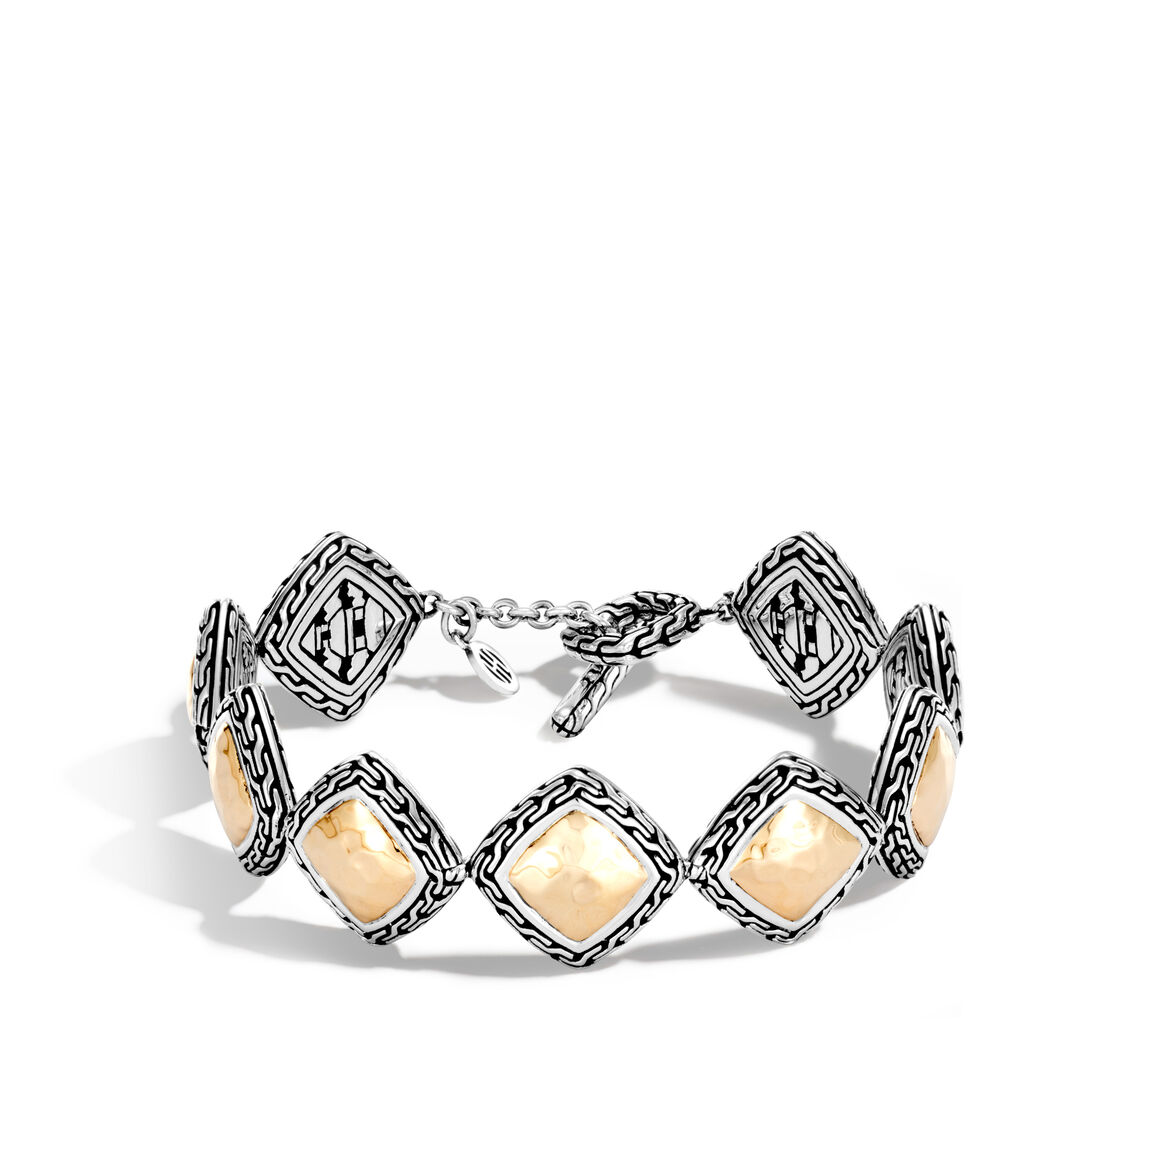 Classic Chain Link Bracelet in Silver and  Hammered 18K Gold